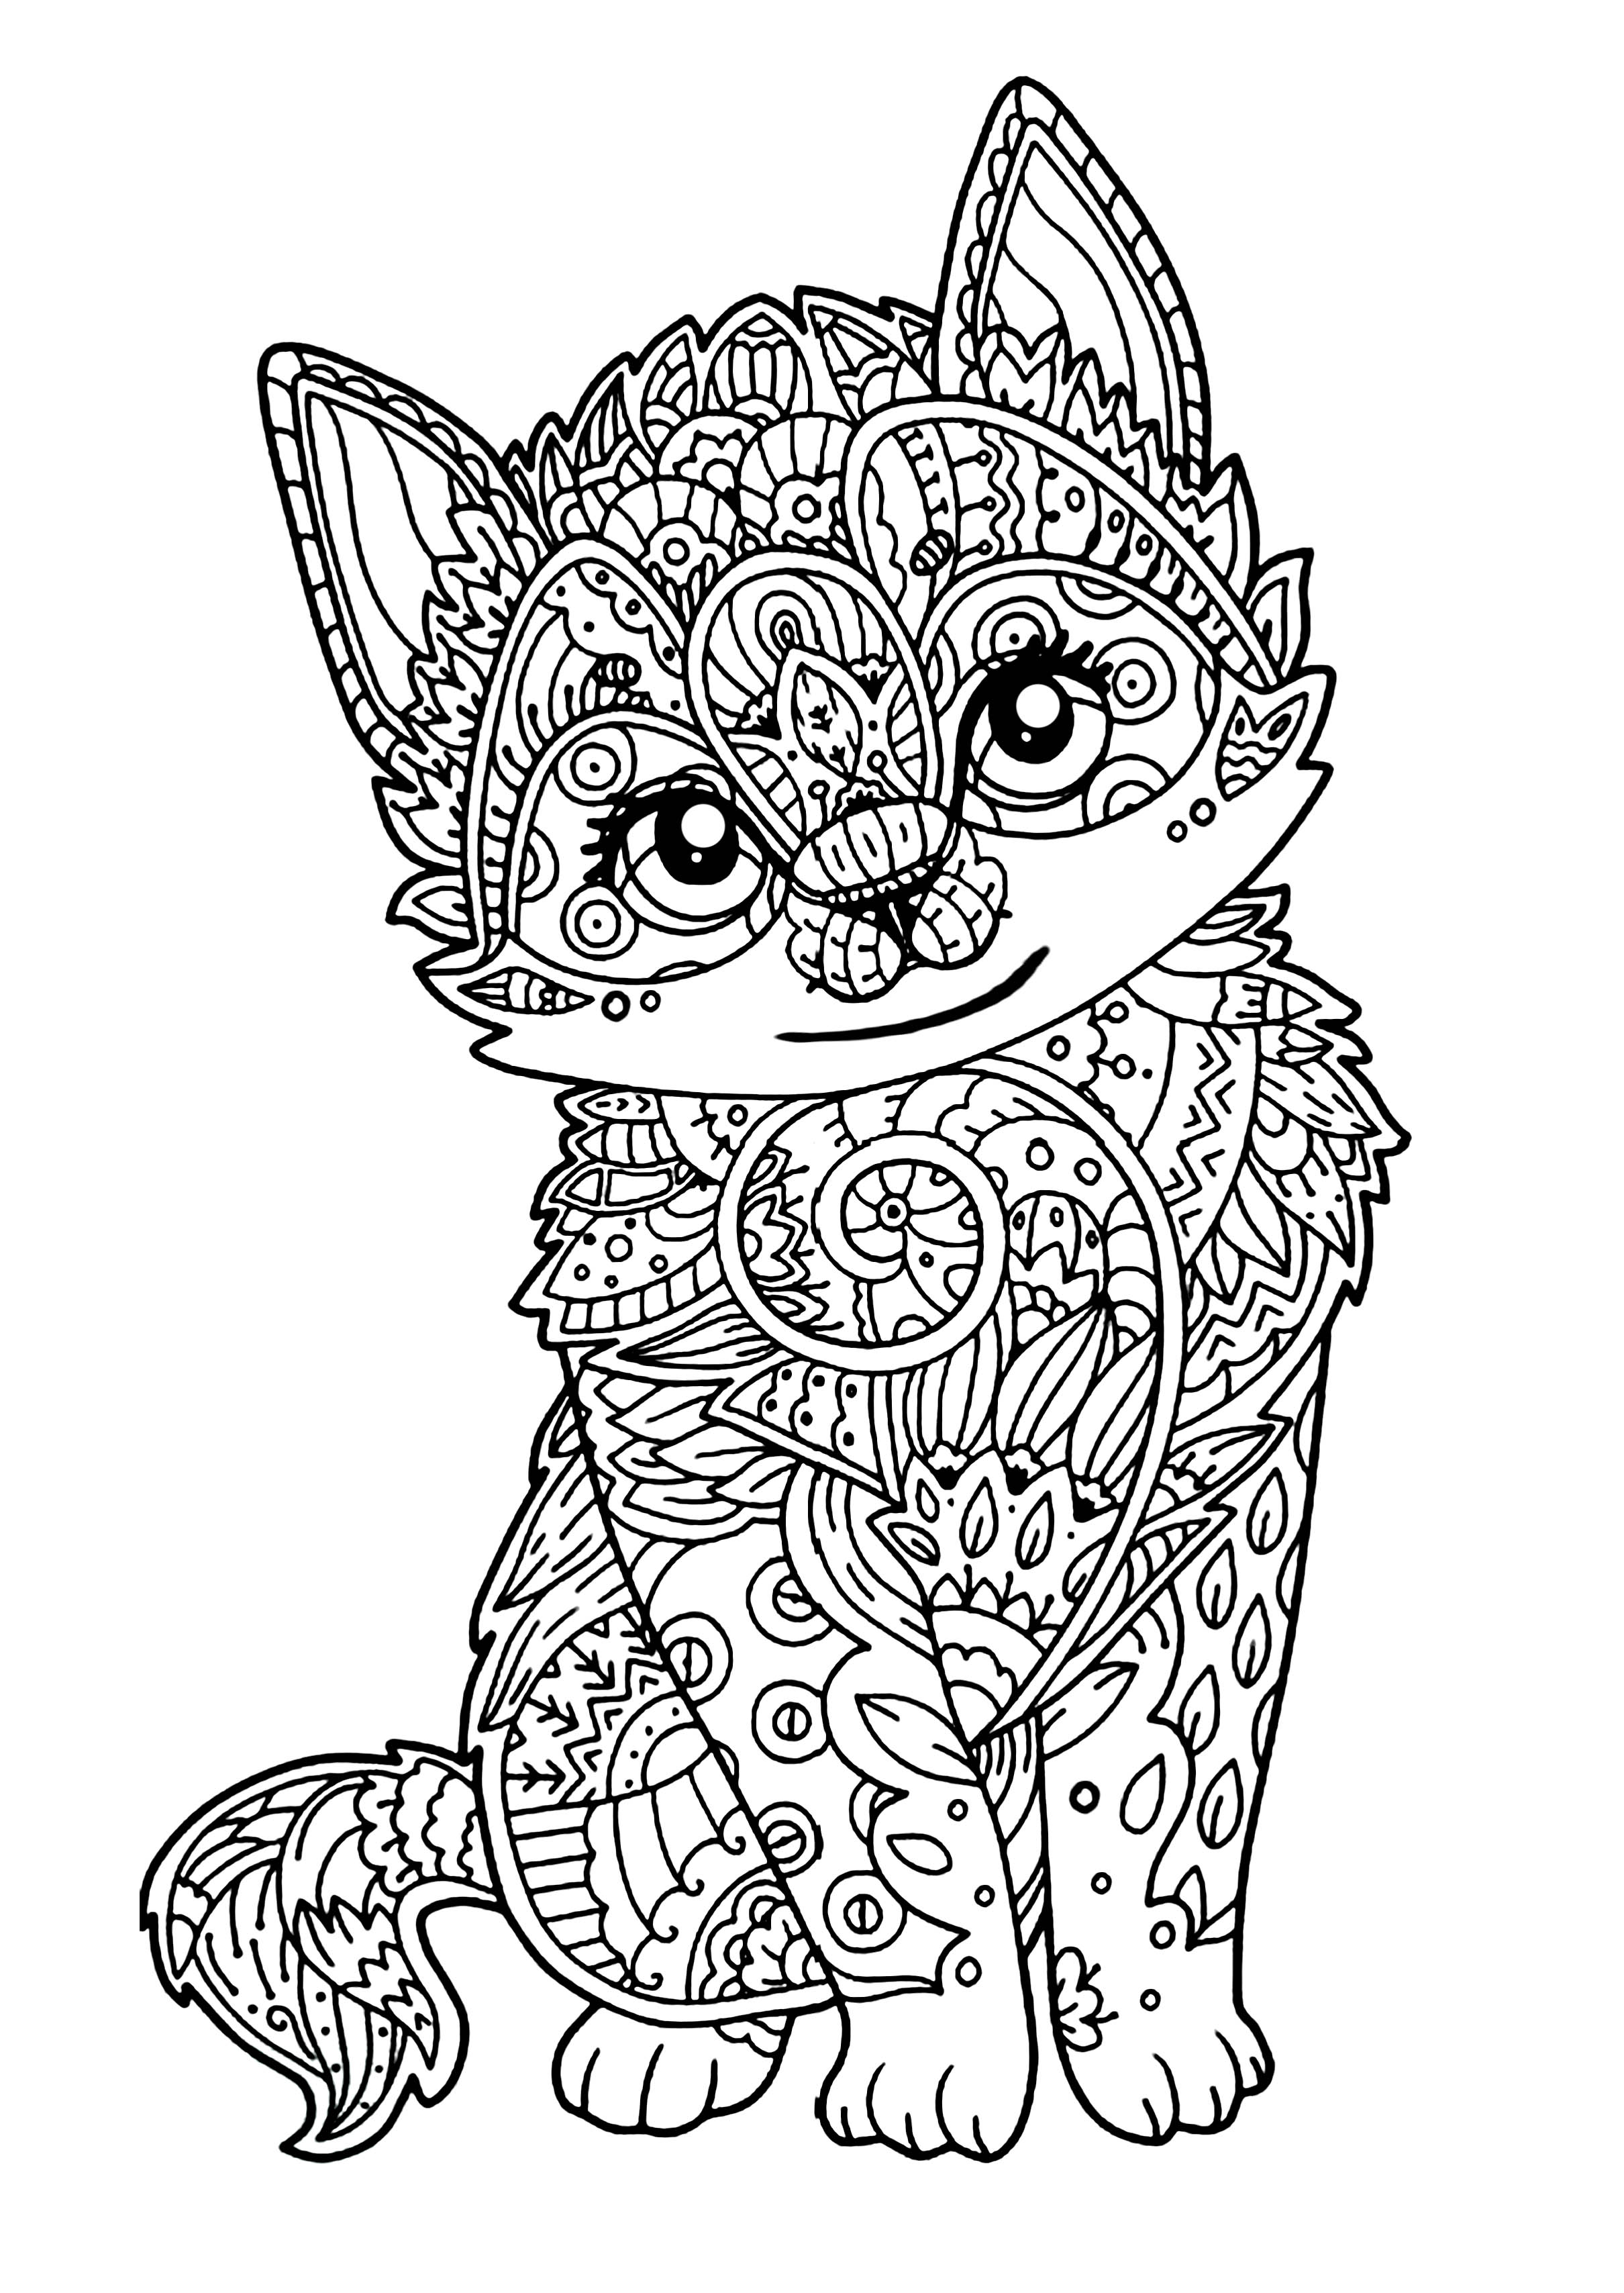 cute kittens coloring pages cute kitten in basket of shamrock coloring page free cute pages kittens coloring